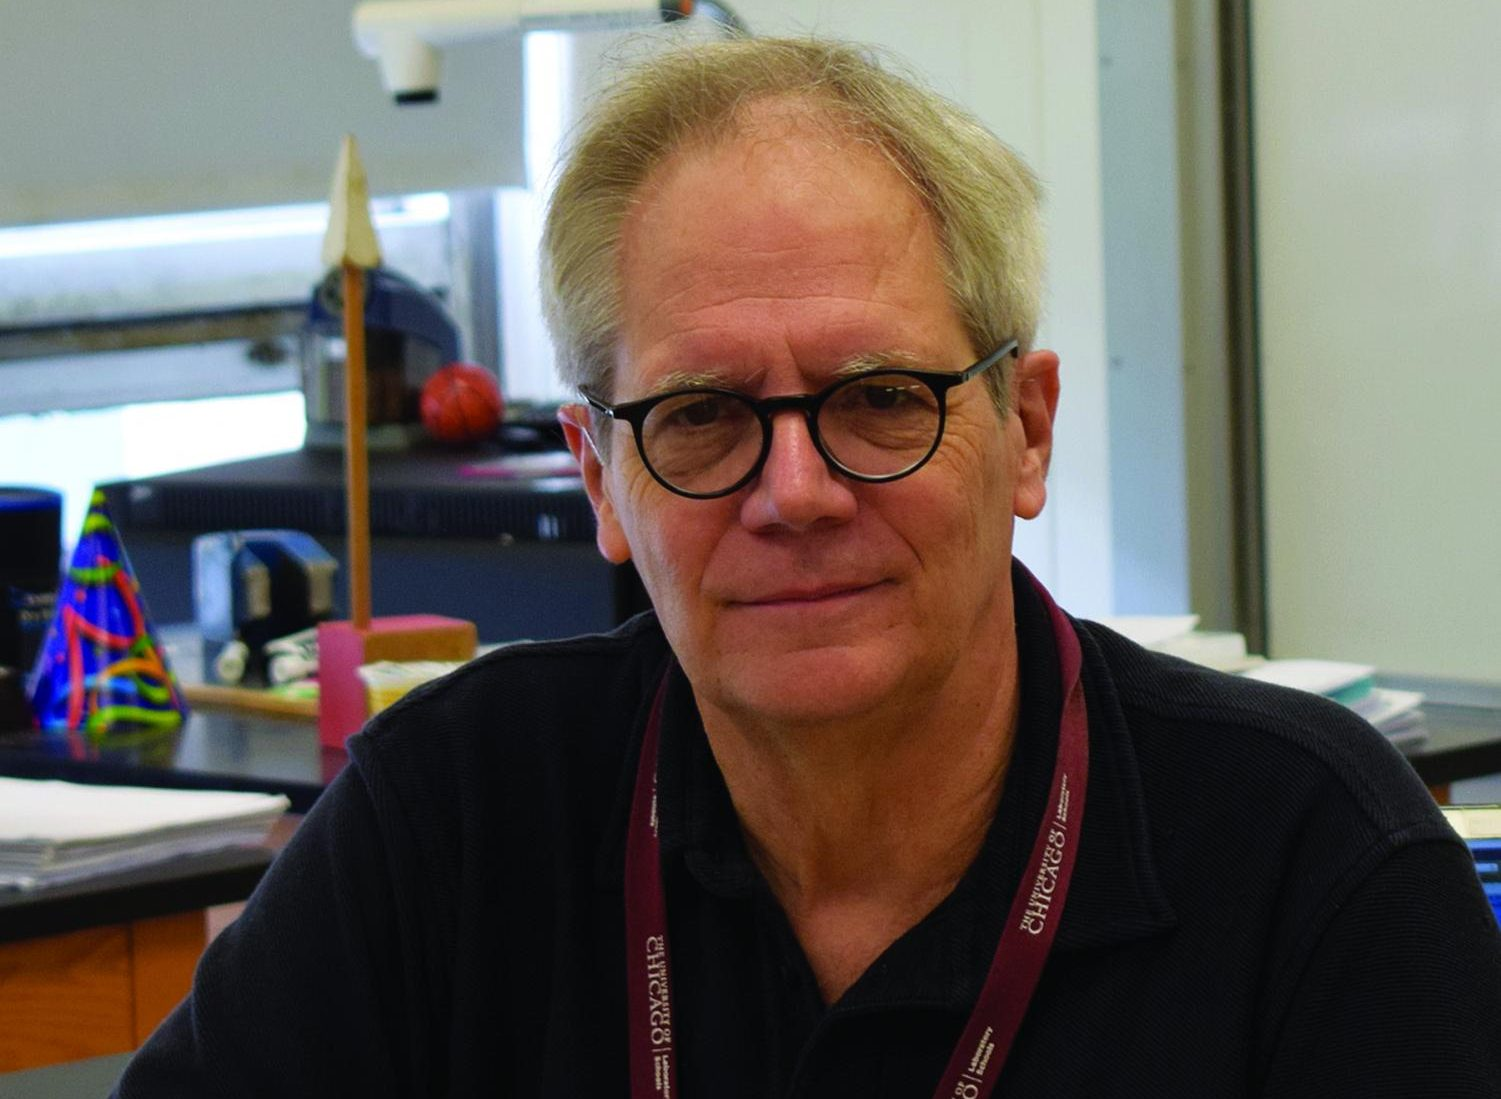 END OF AN ERA. After 33 years of dedicated, passionate instruction, science teacher David Derbes will retire at the end of the school year. Colleauges and former students praised his enthusiasm, supportive nature and kindness, as well as his infectious love of learning.